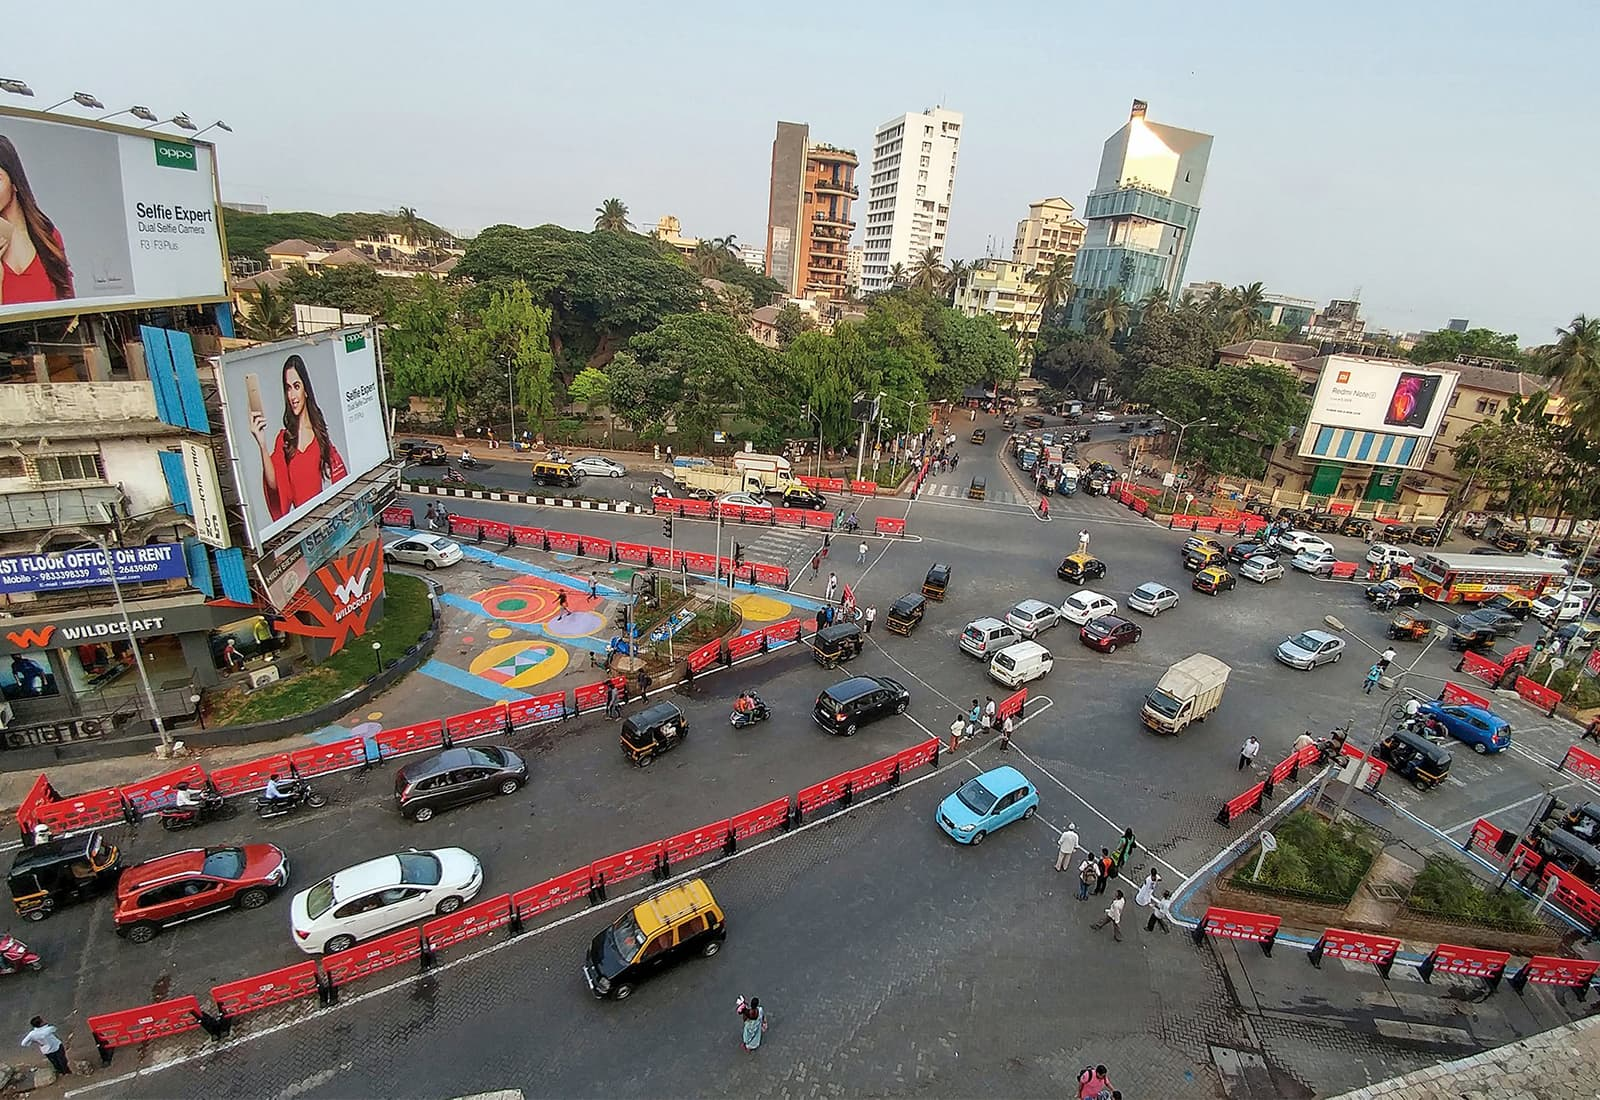 A busy intersection in Mumbai, India was redesigned with colorful barriers and crosswalks making pedestrians, cyclists, and drivers safer. Photo credit: WRI India